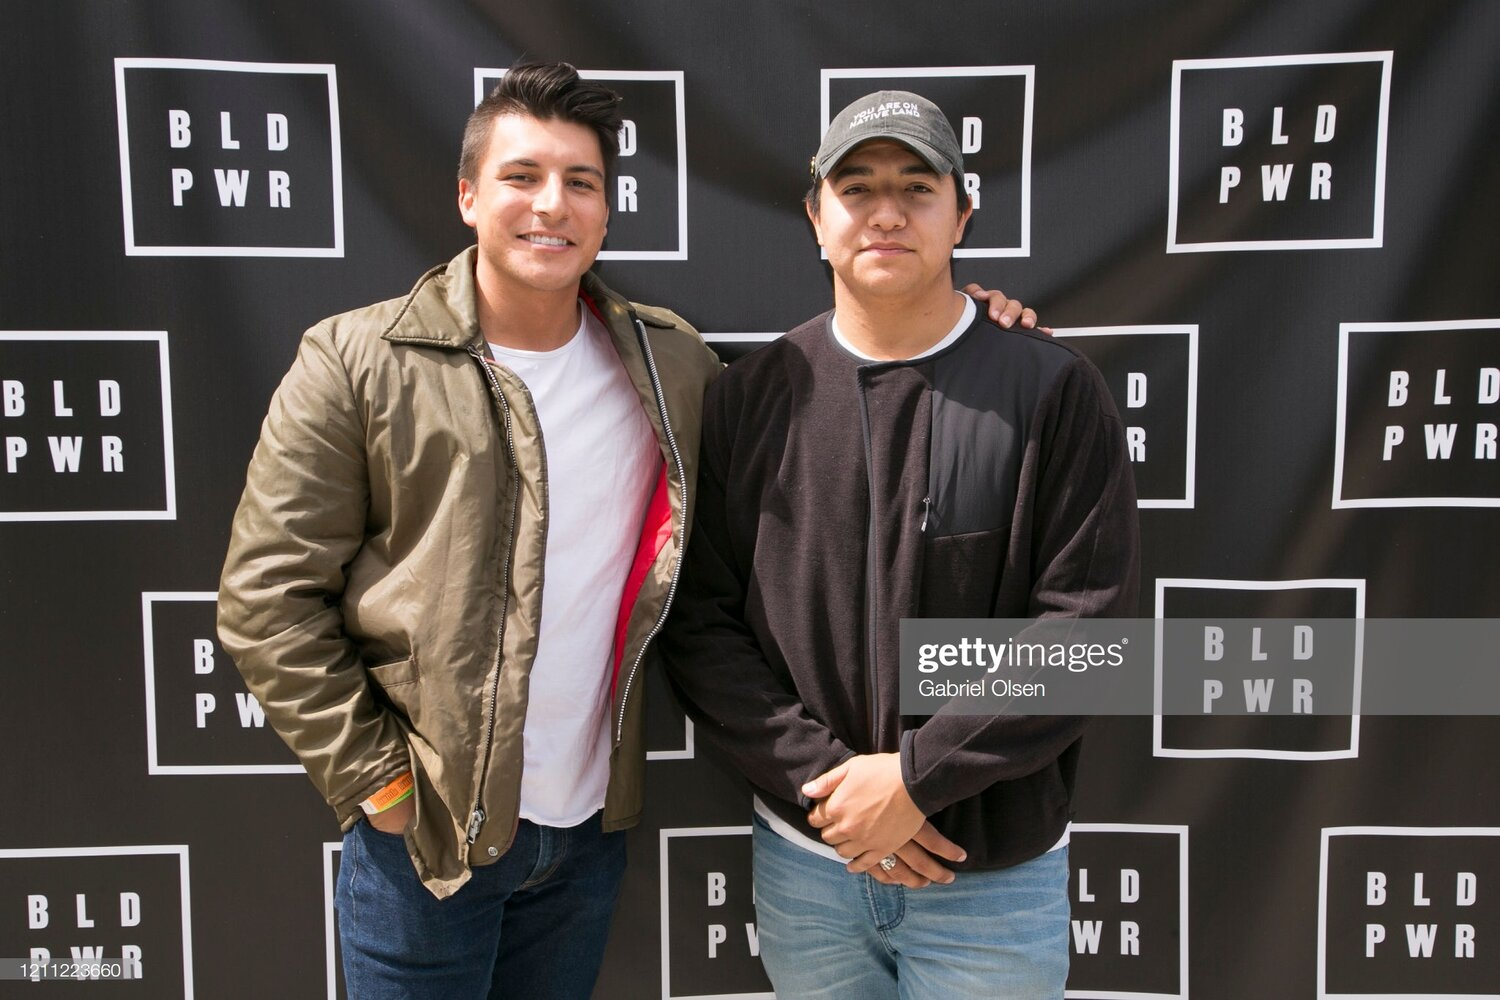 Hud and Joey at Los Angeles event  Photo Courtesy of Gabriel Olsen